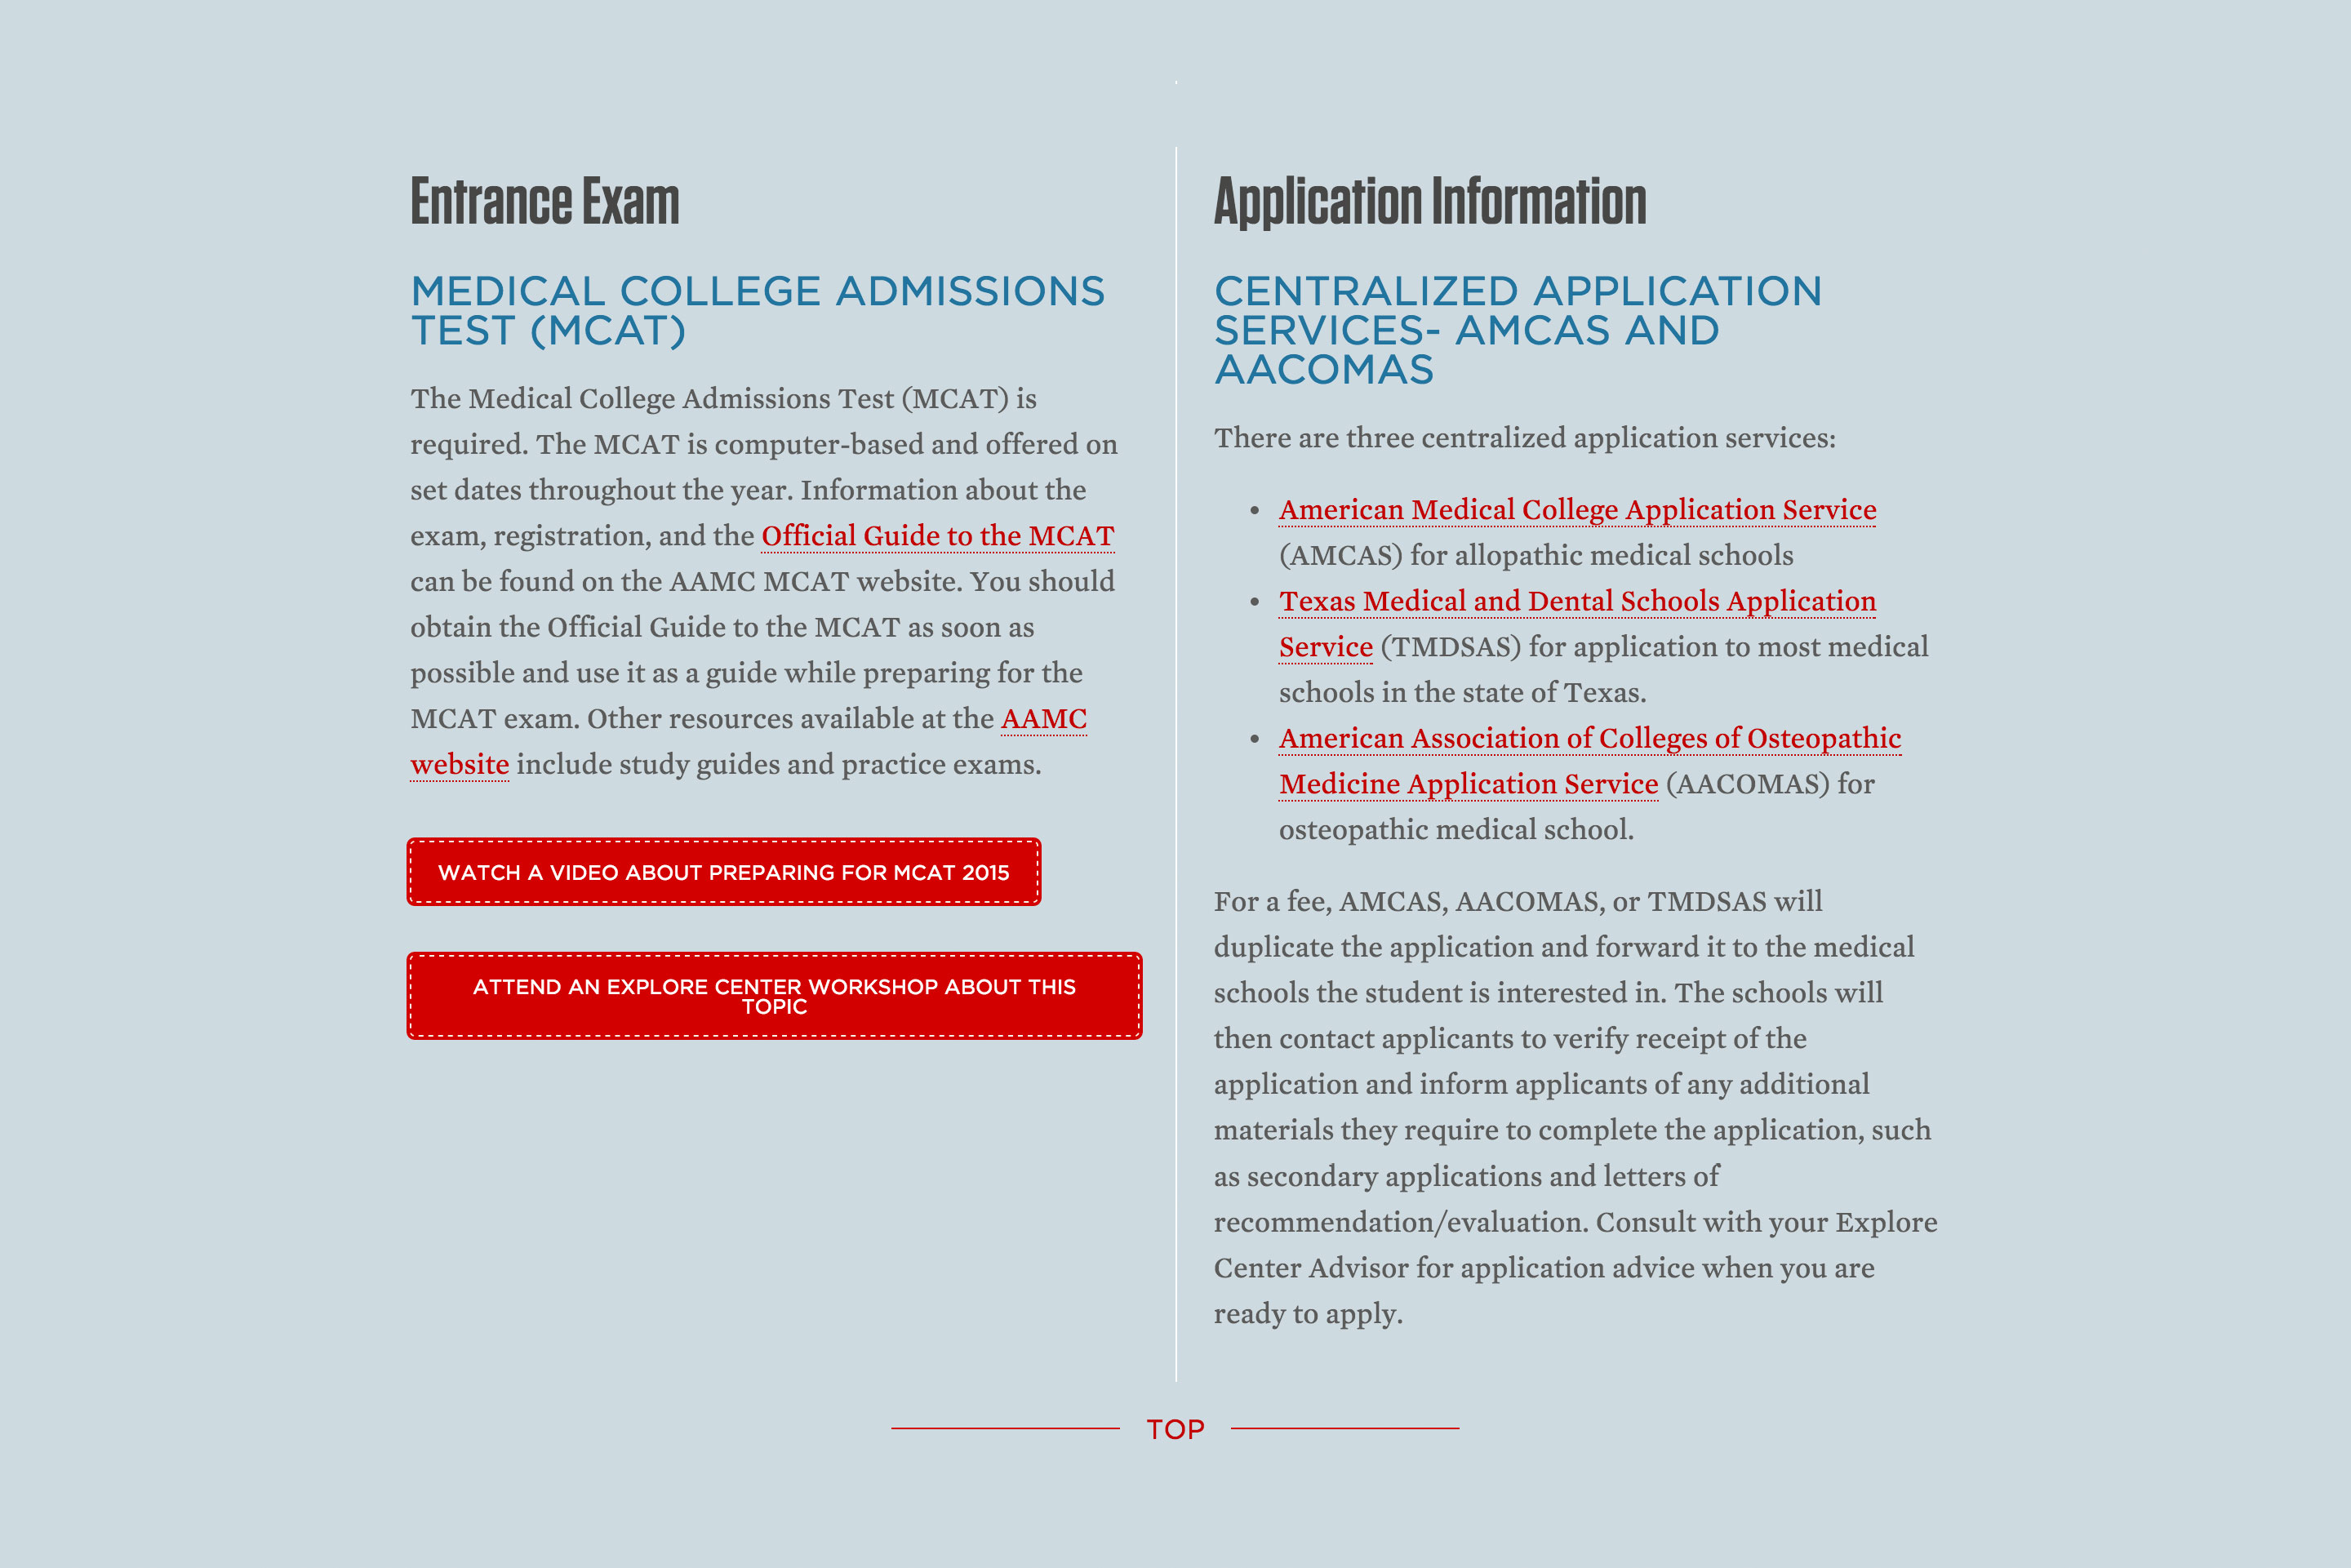 Entrance Exam and Application Information section of Explore Center's Pre-Med program